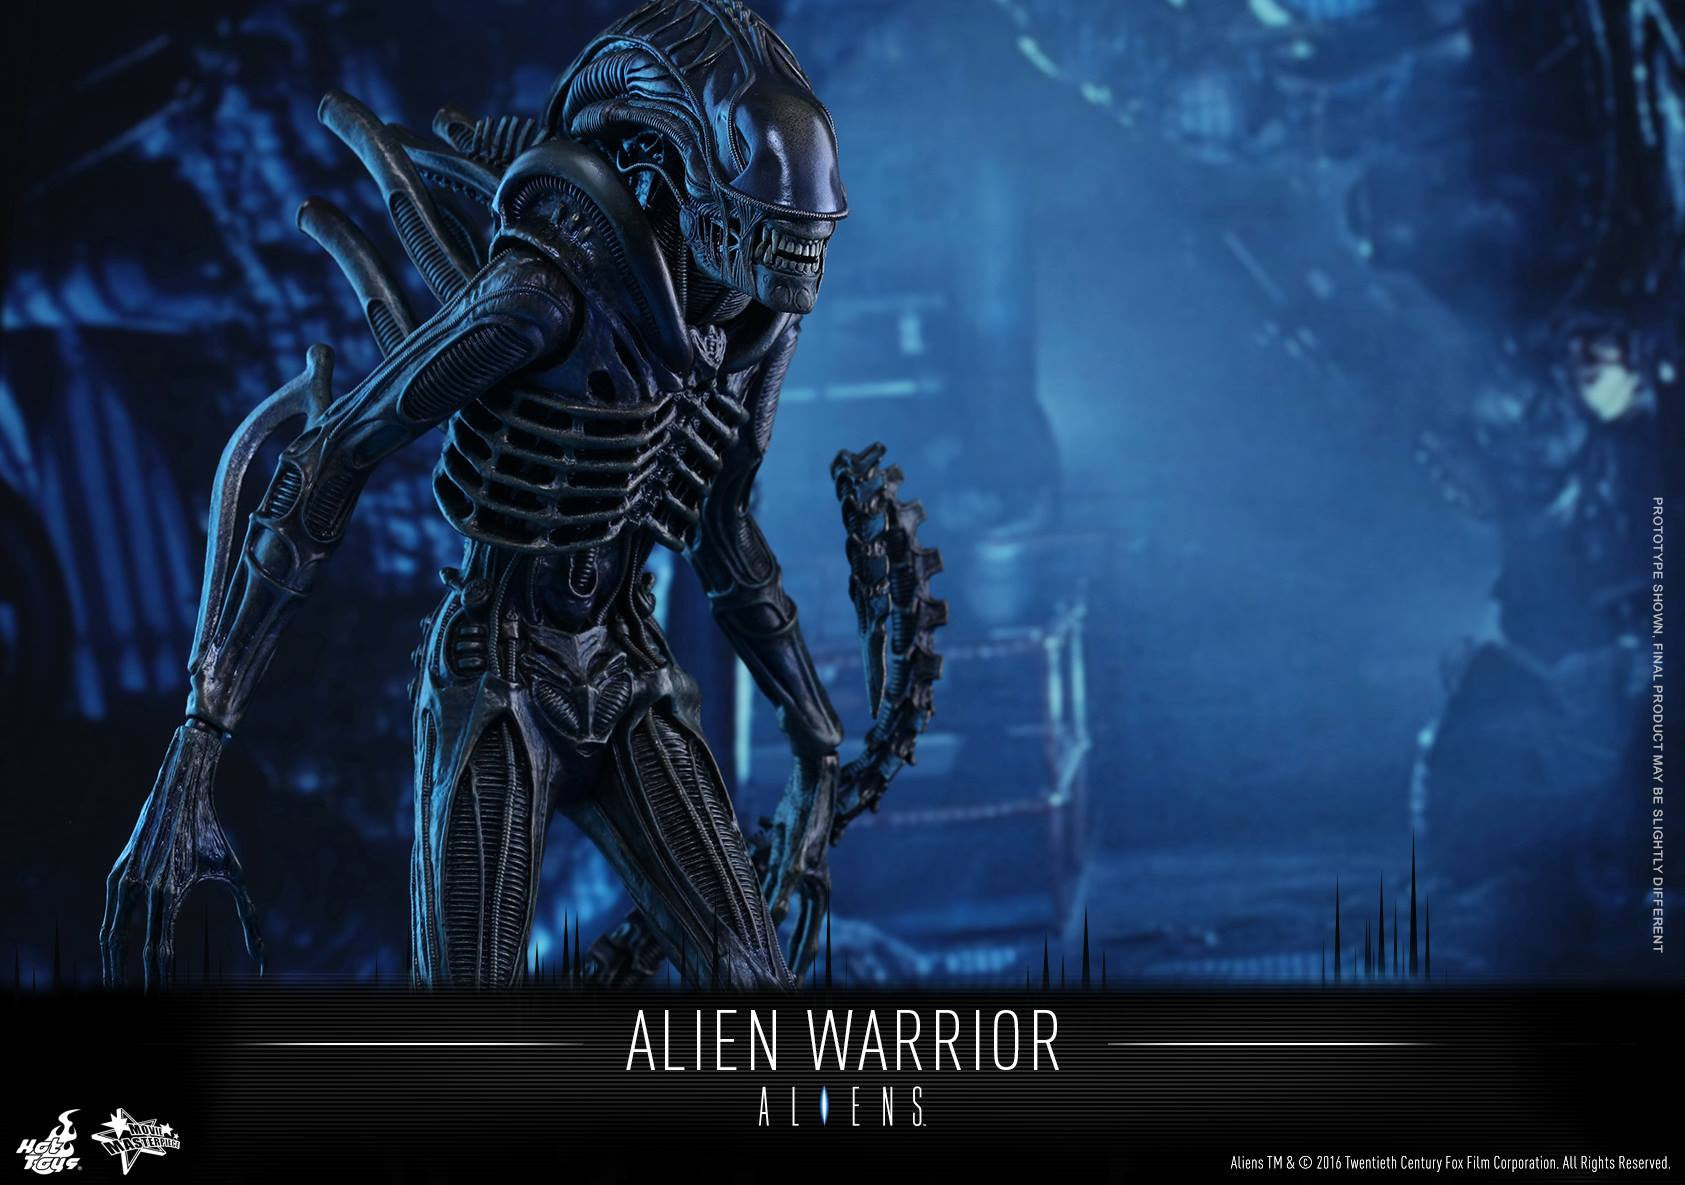 Hot Toys - Aliens: Alien Warrior MMS354 - Marvelous Toys - 7